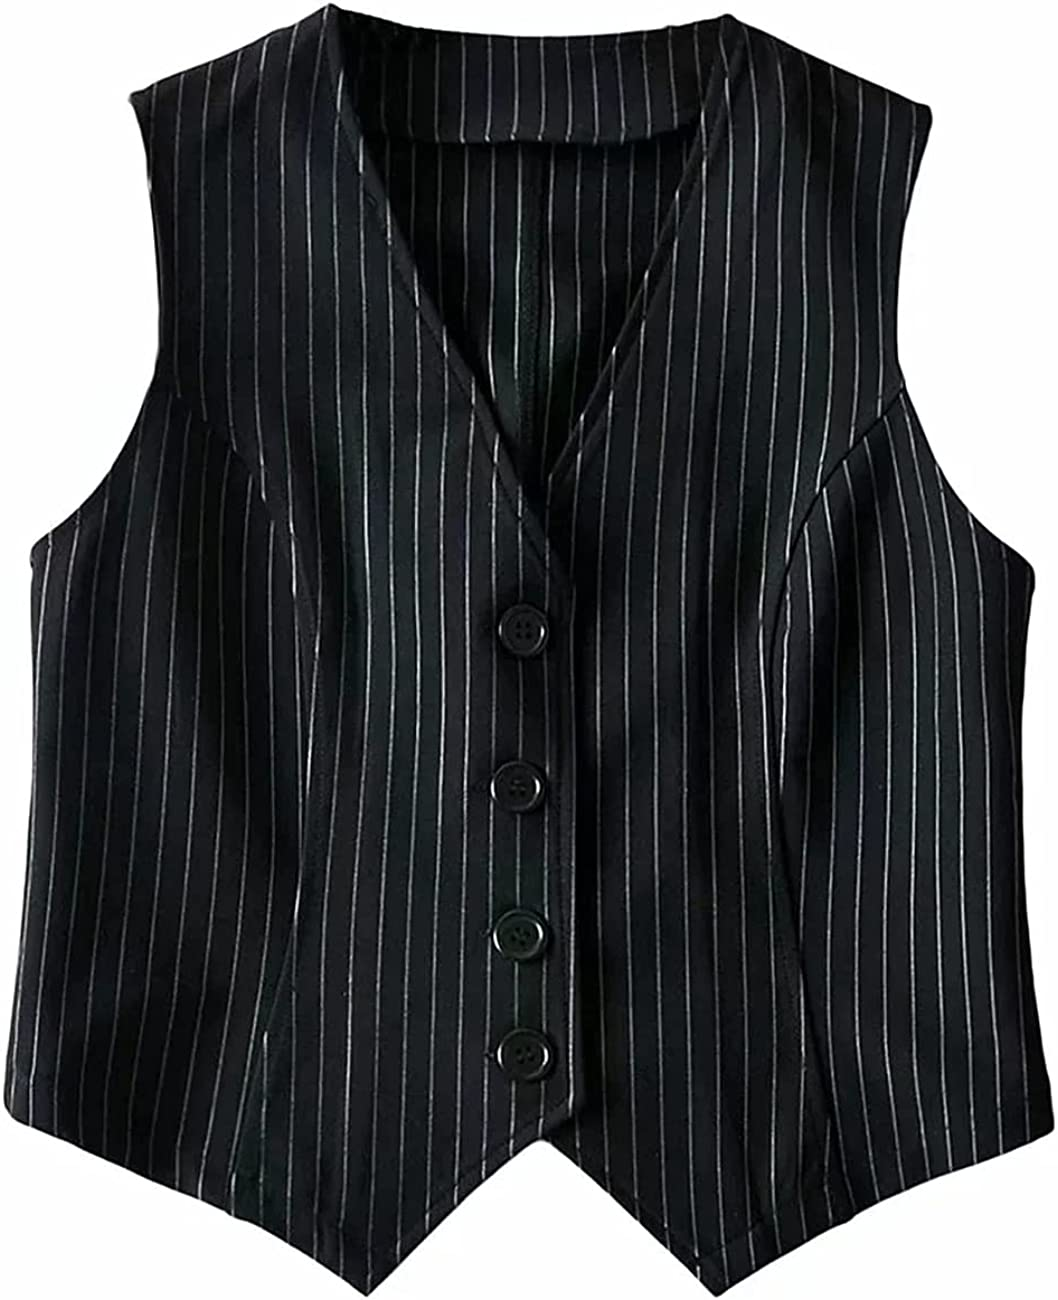 Jeovuanun Womens Striped Button Dressy Vest Jacket Casual Stretchy OL Fitted Tuxedo Suit Waistcoat